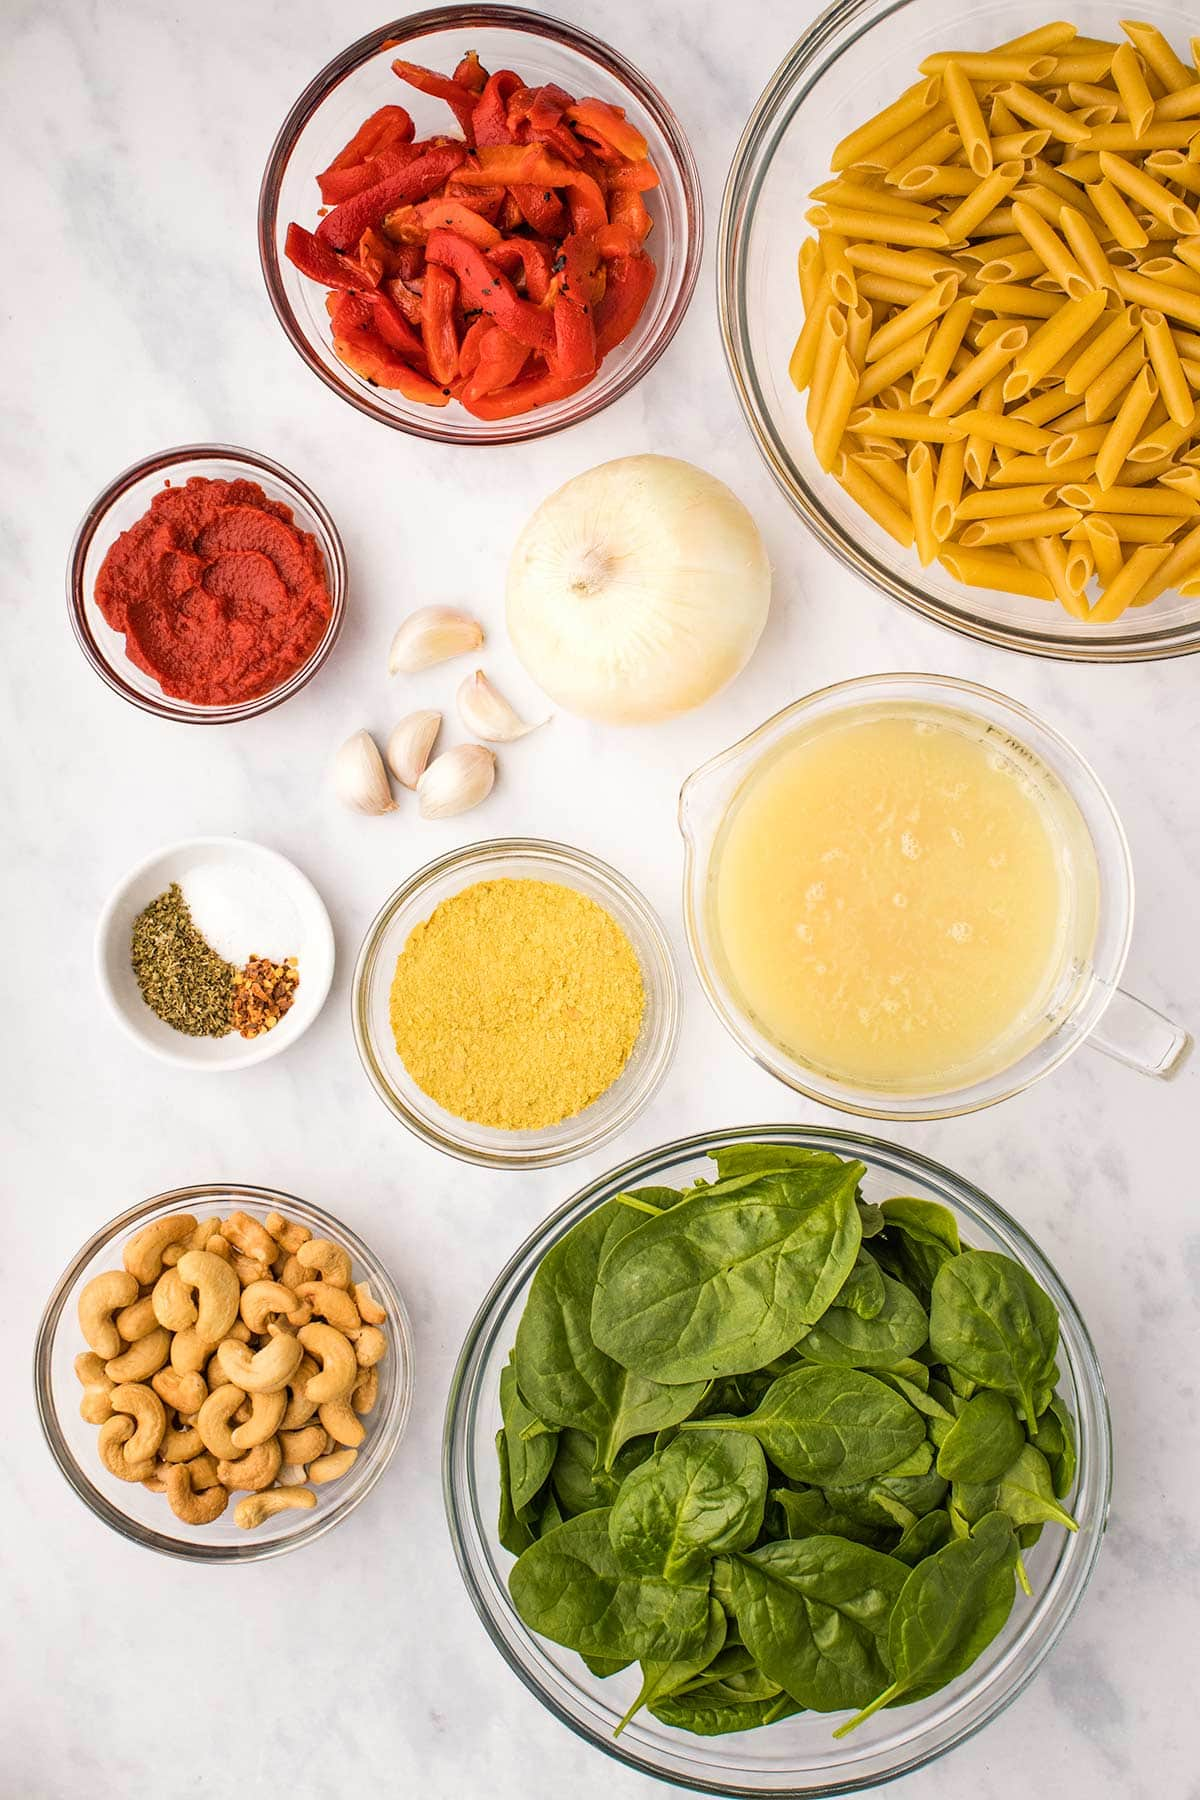 Ingredients needed to make creamy Instant Pot Vegan Pasta in glass bowls viewed from overhead